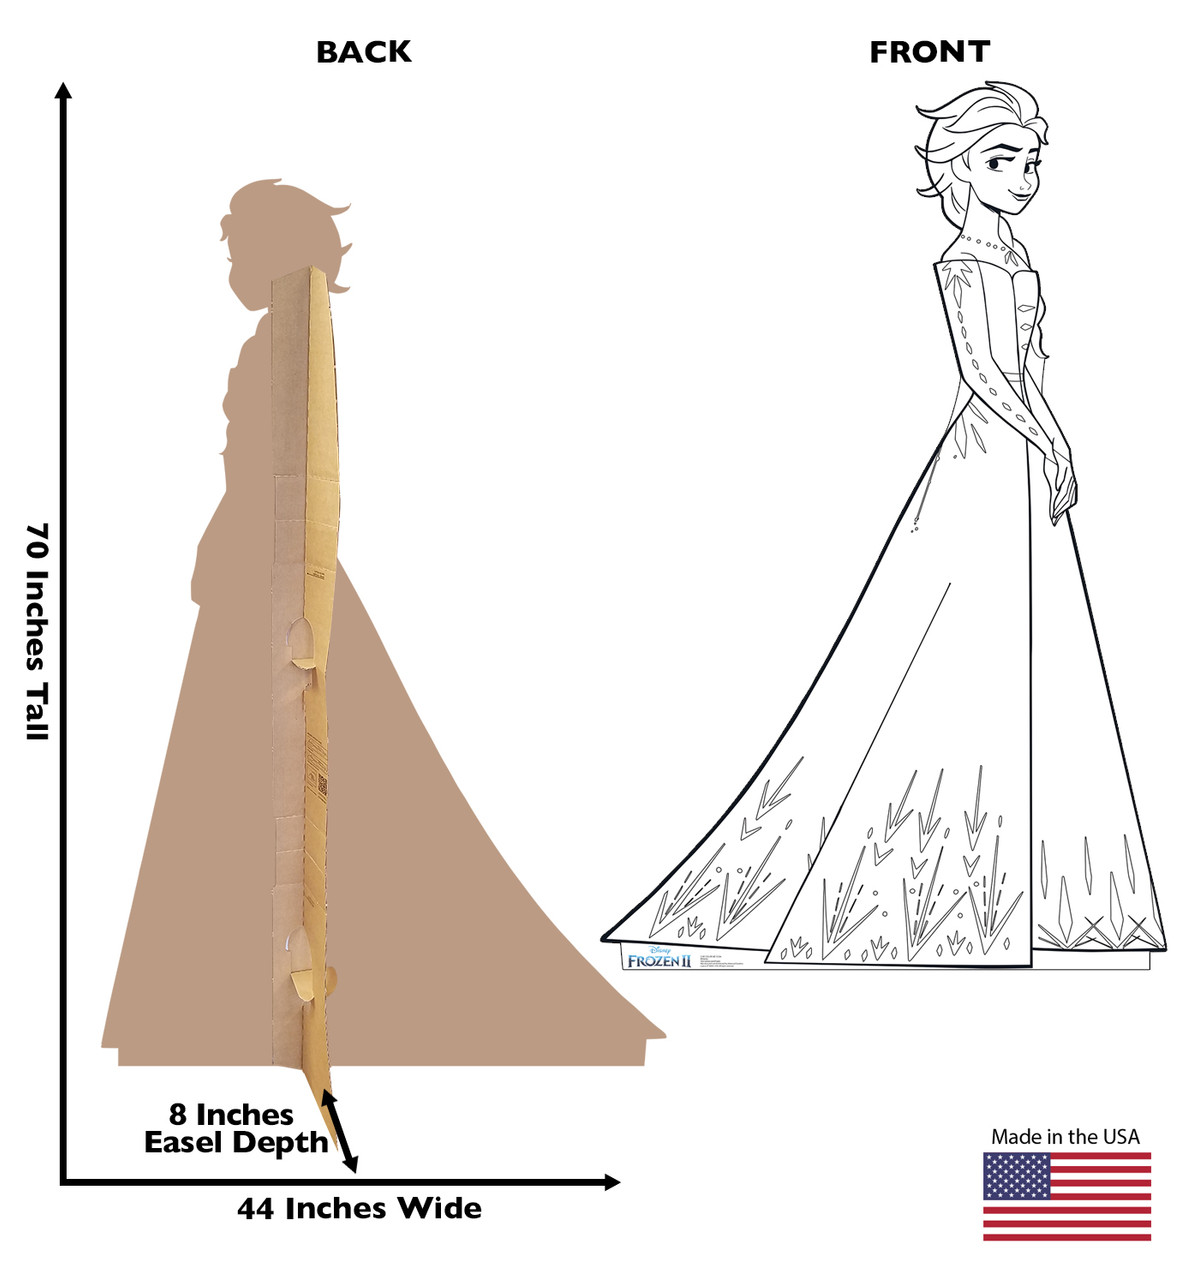 Life-size Color Me Elsa Standee with front and back dimensions.